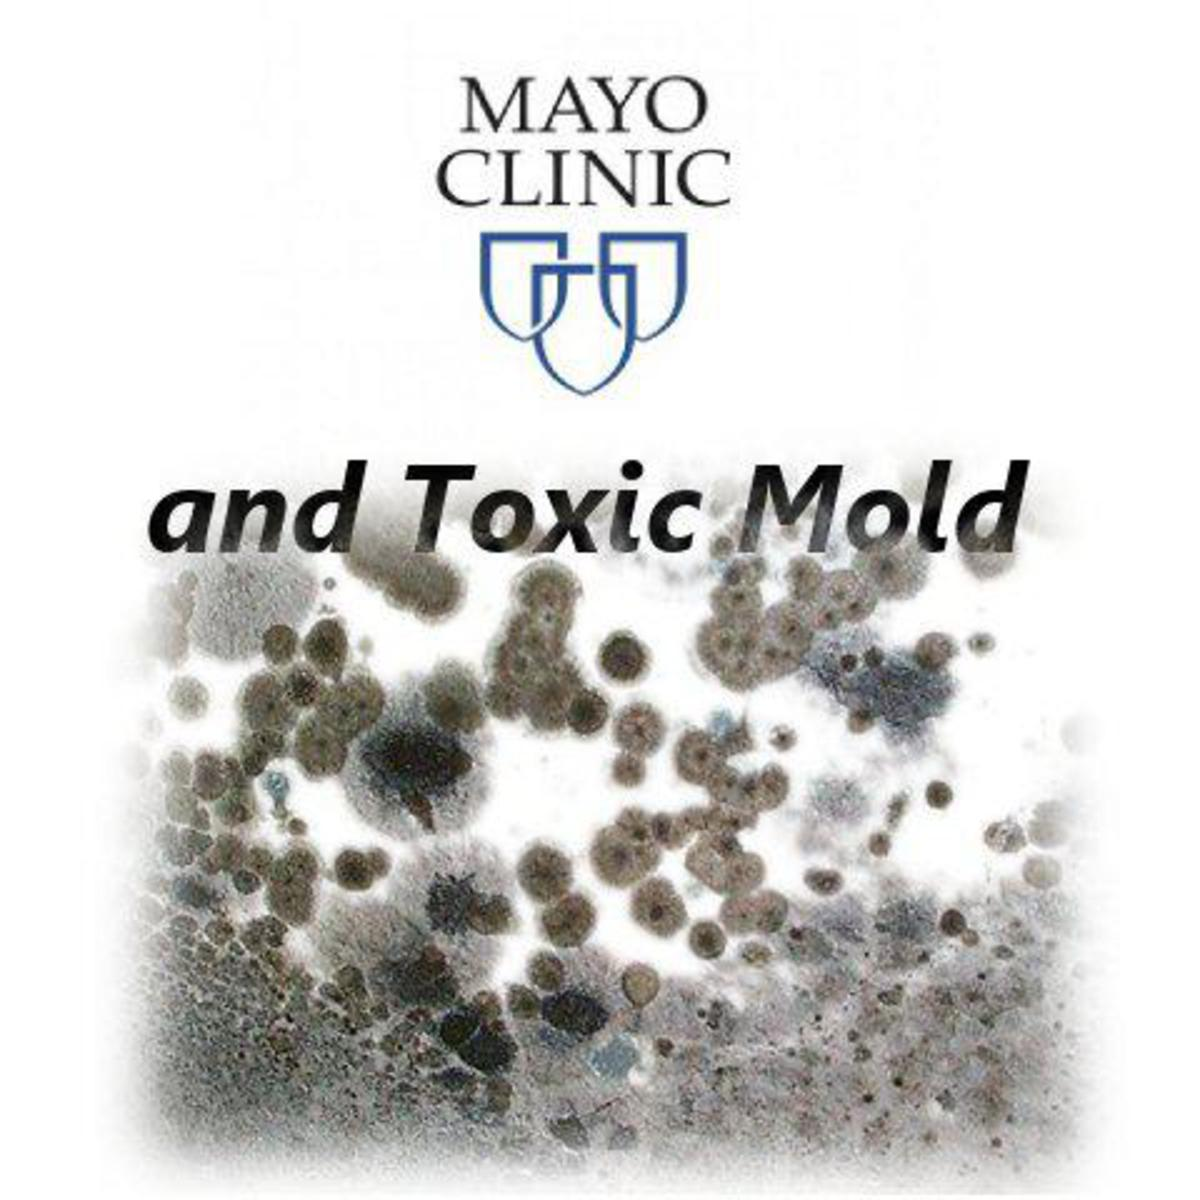 Mayo Clinic to finally recognize Mold as a Toxicity and not just an allergy!!